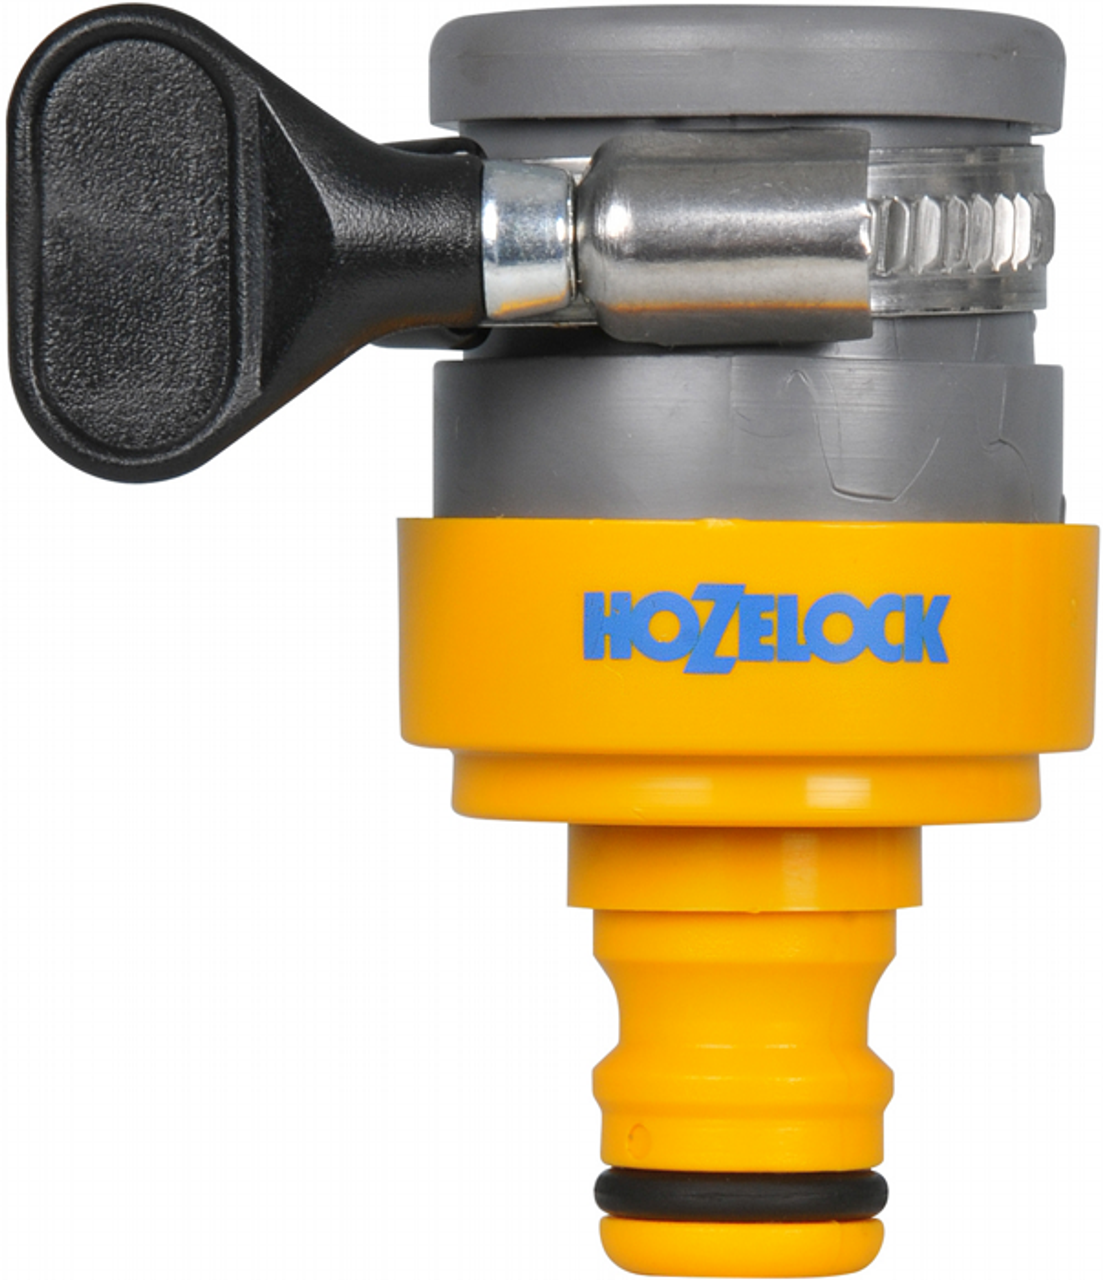 Hozelock 2176 Tap Connector Snap-on